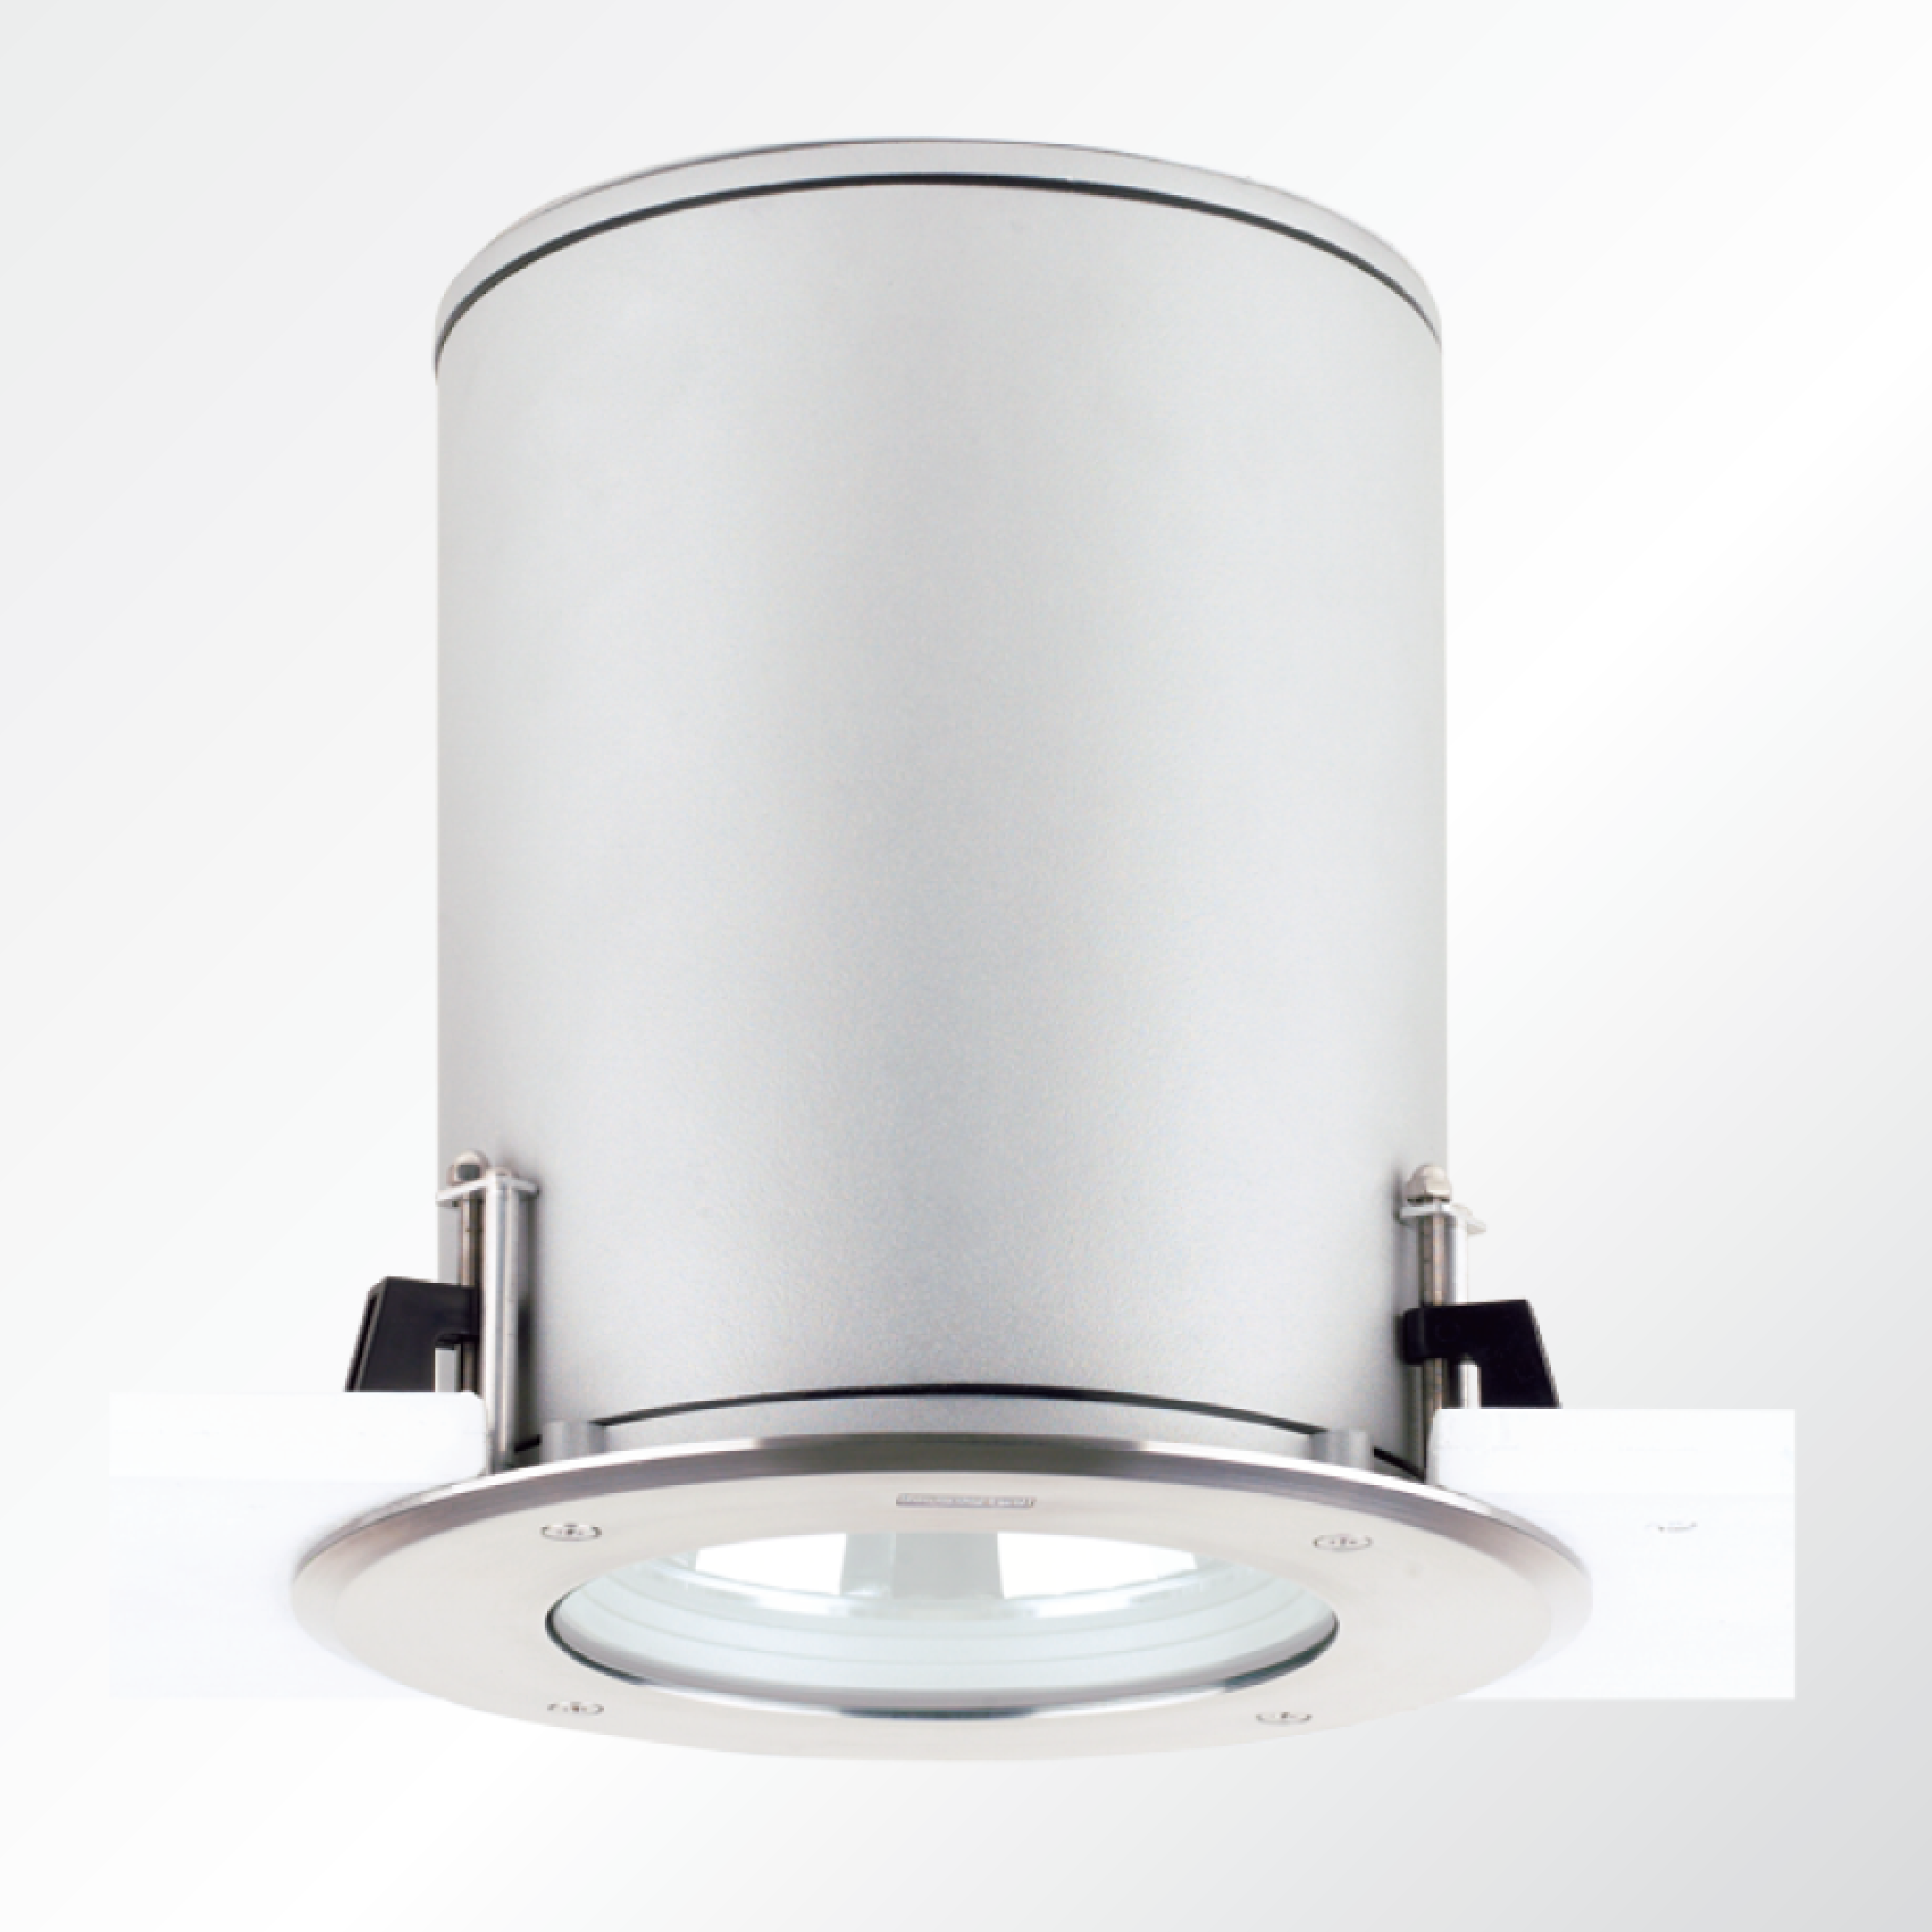 robust robust 1 2 recessed exterior downlight round dia hp